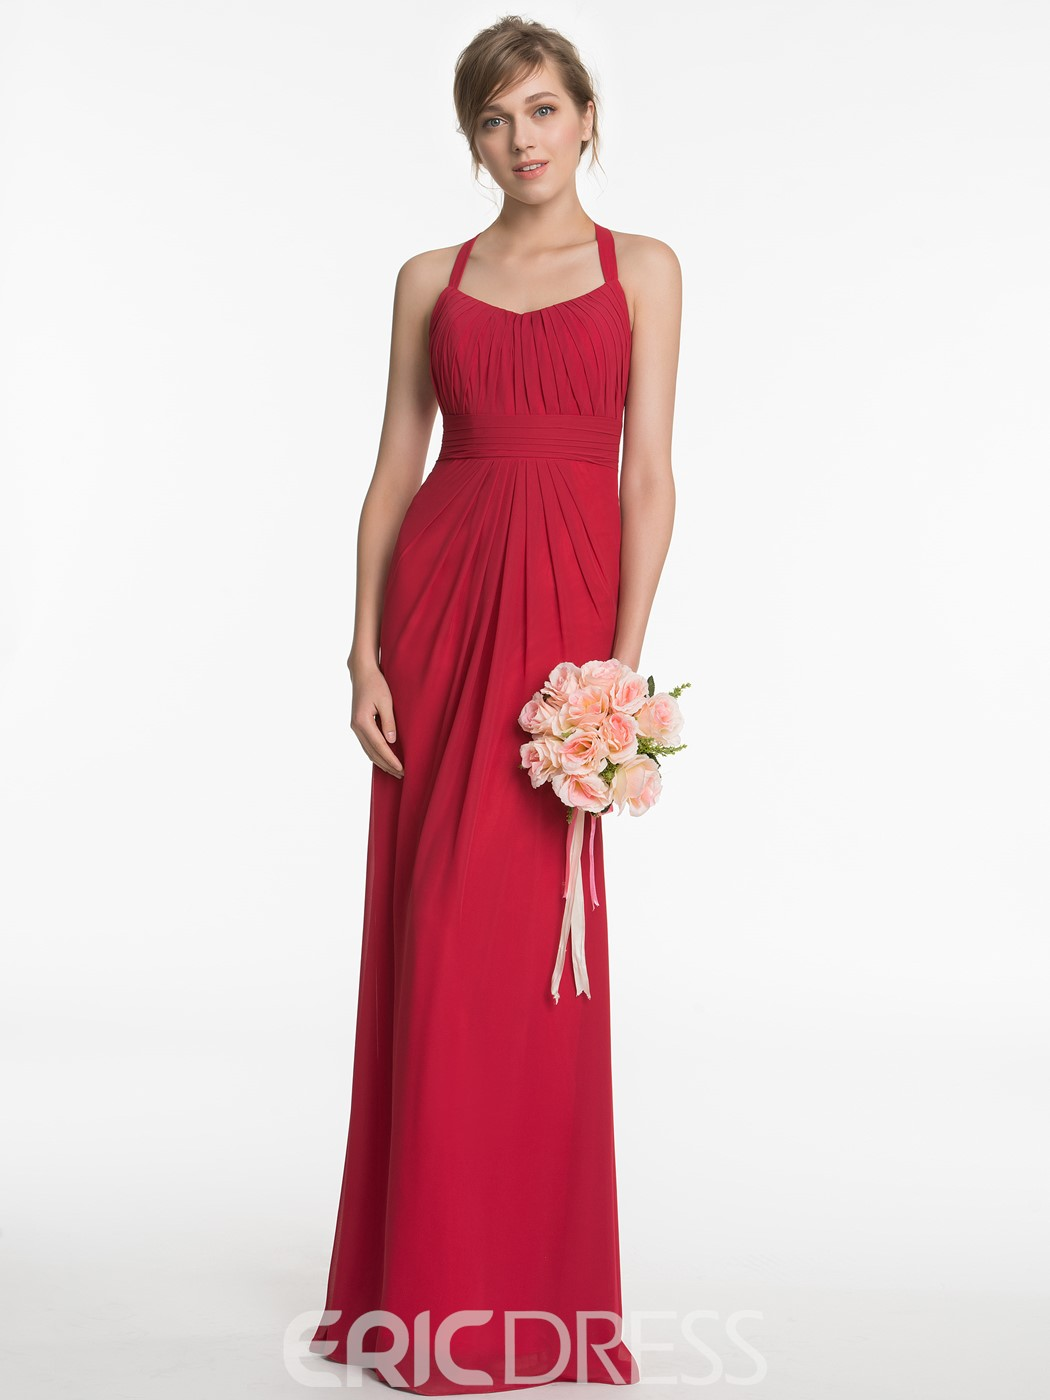 Ericdress Elegant Halter A Line Chiffon Bridesmaid Dress